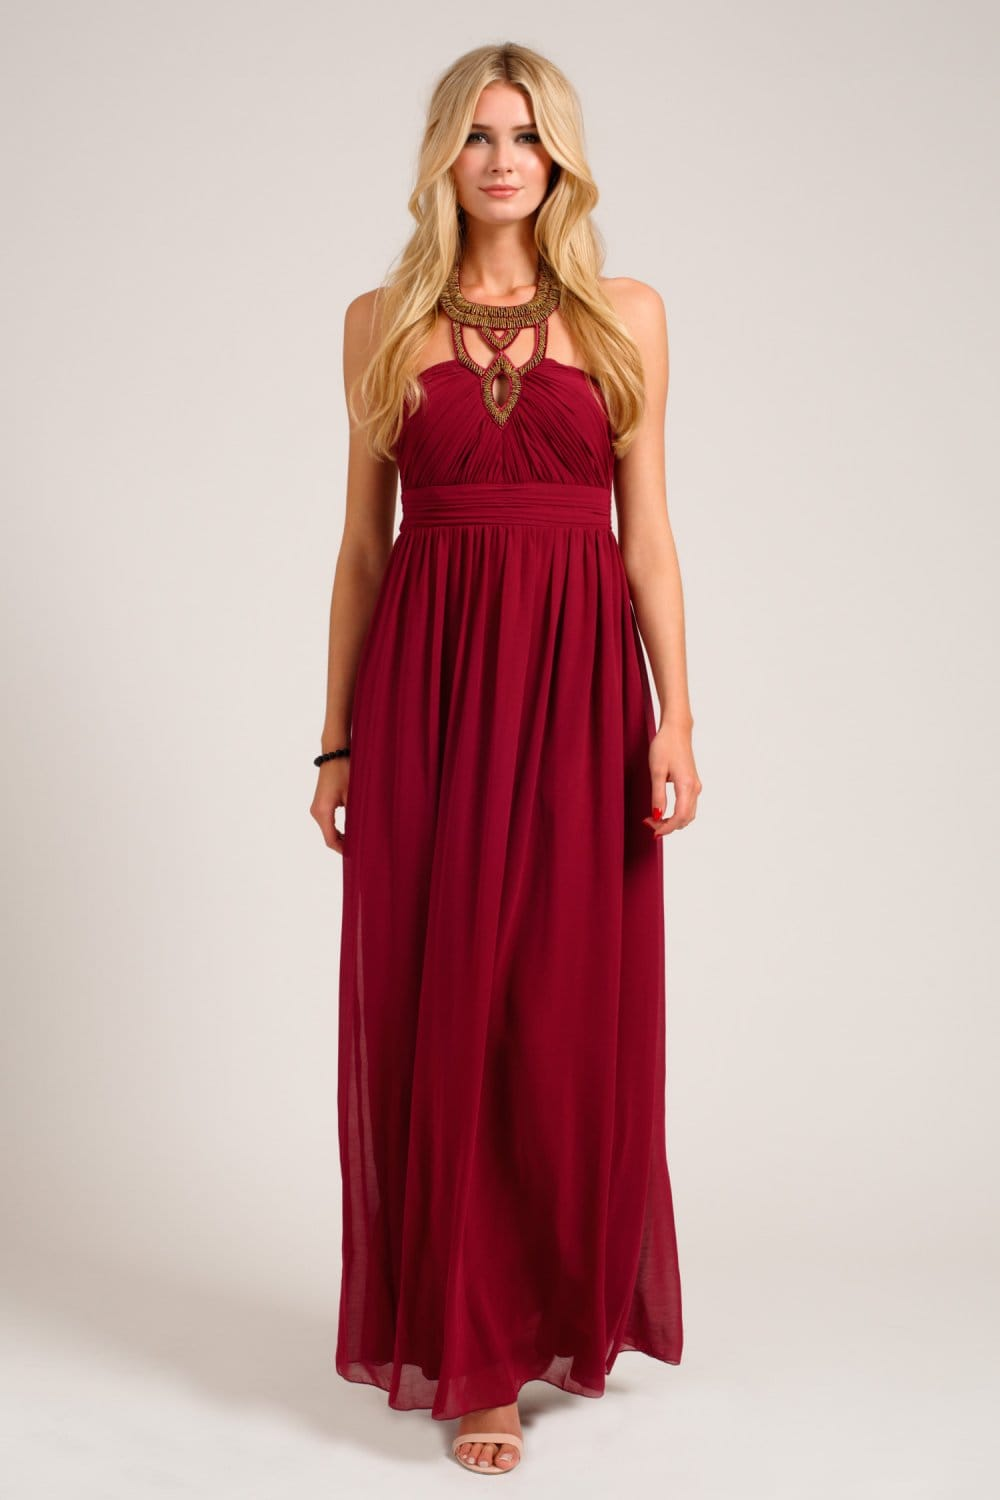 Mulberry Heavily Embellished Halterneck Chiffon Maxi Dress